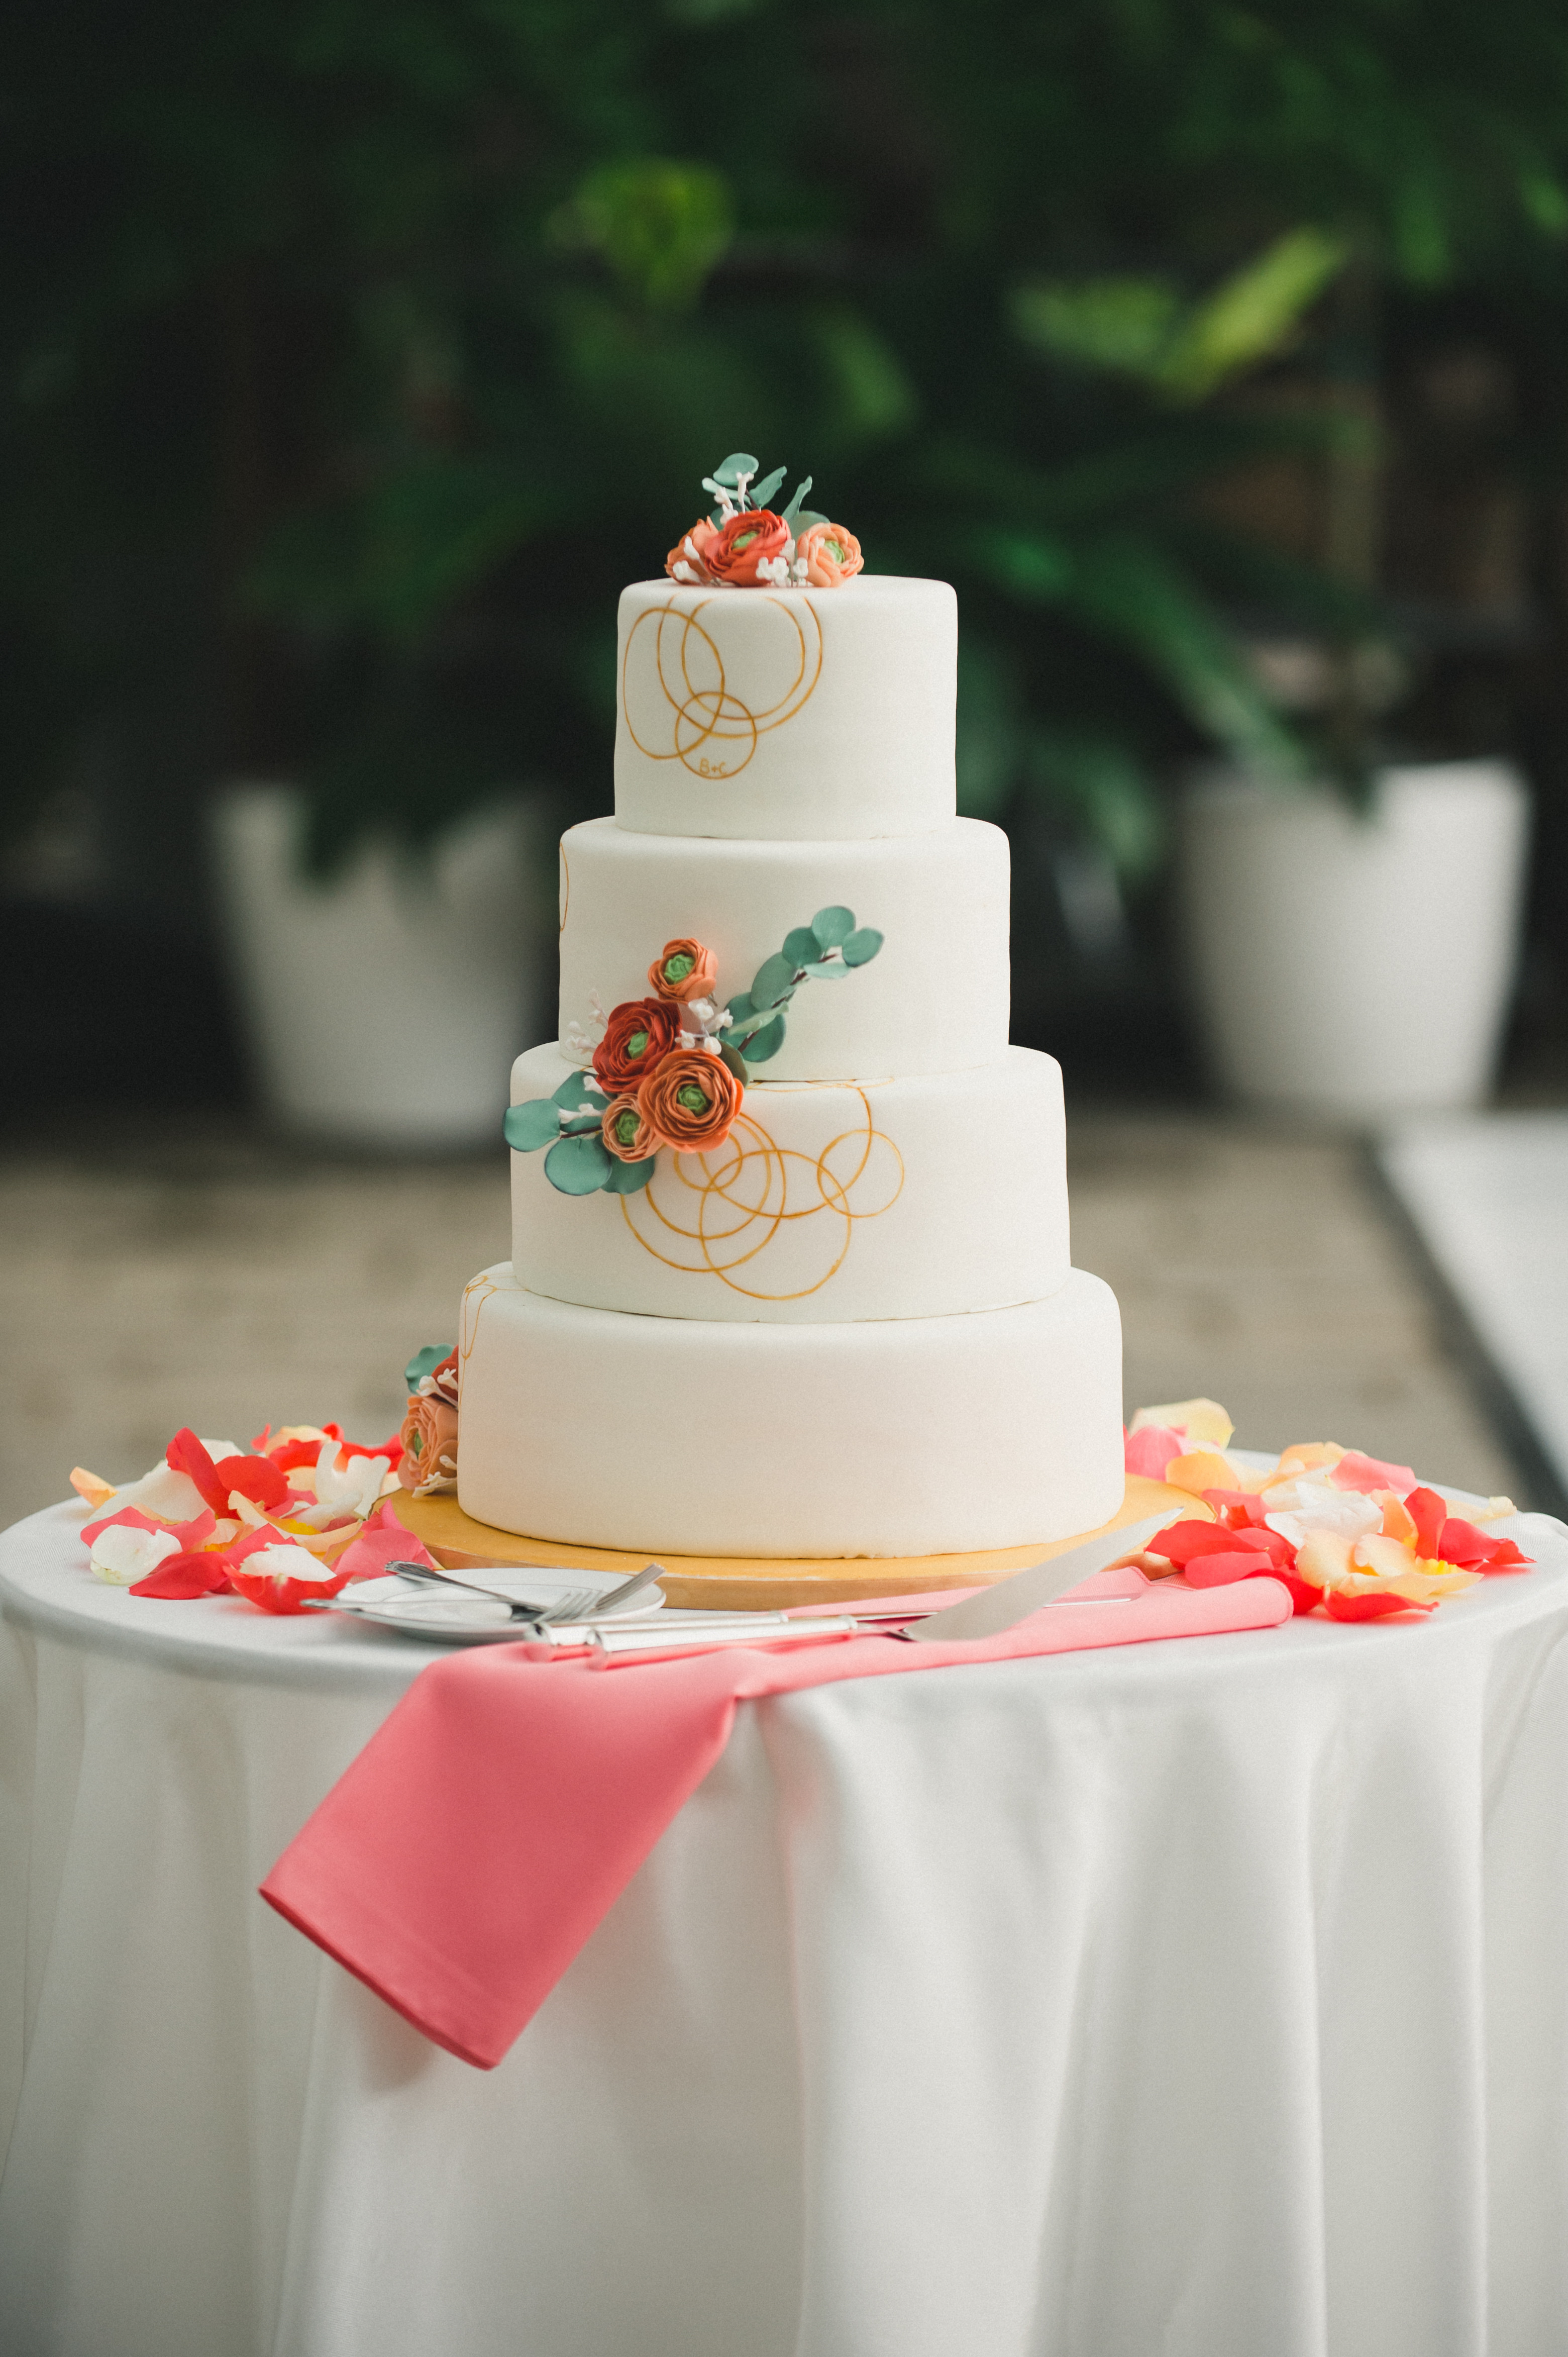 Wedding Cakes Com  Zingerman s Wedding Cakes Zingerman s Bakehouse